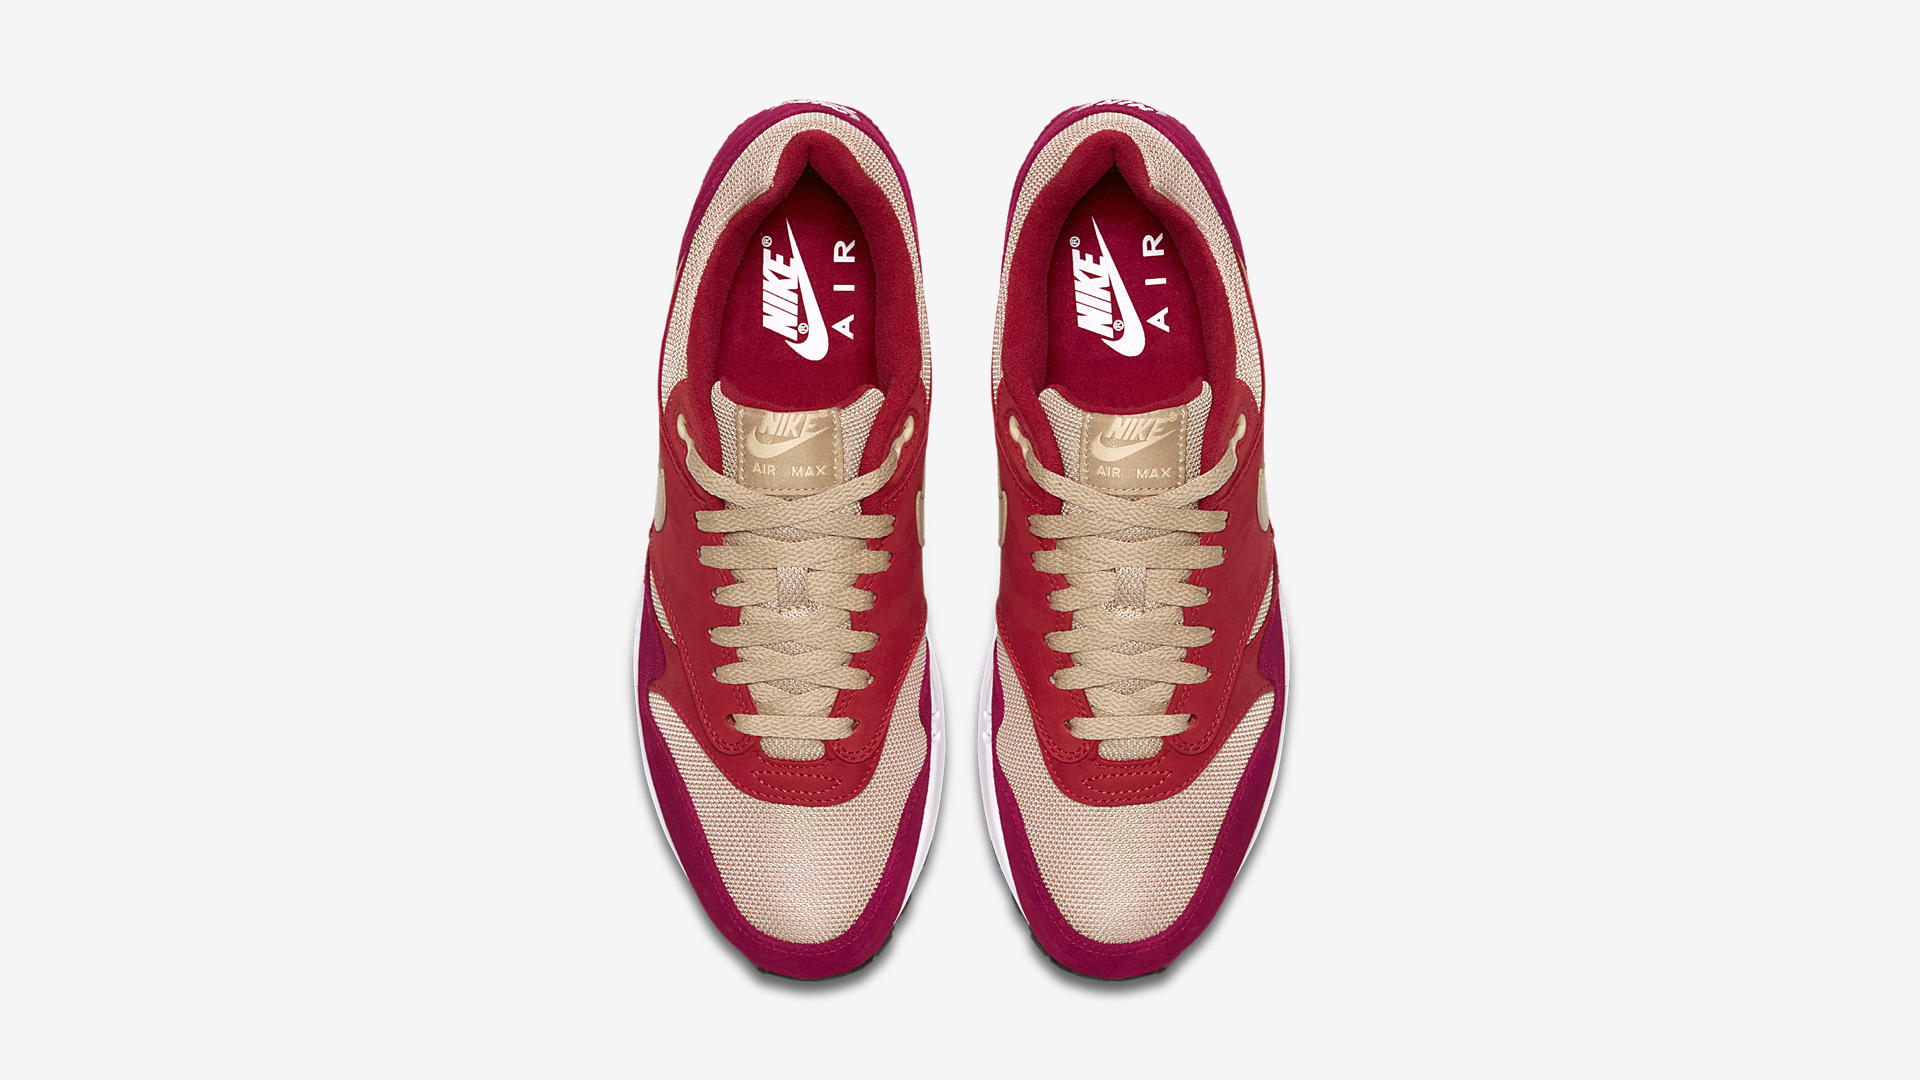 908366 600 Nike Air Max 1 Red Curry 2